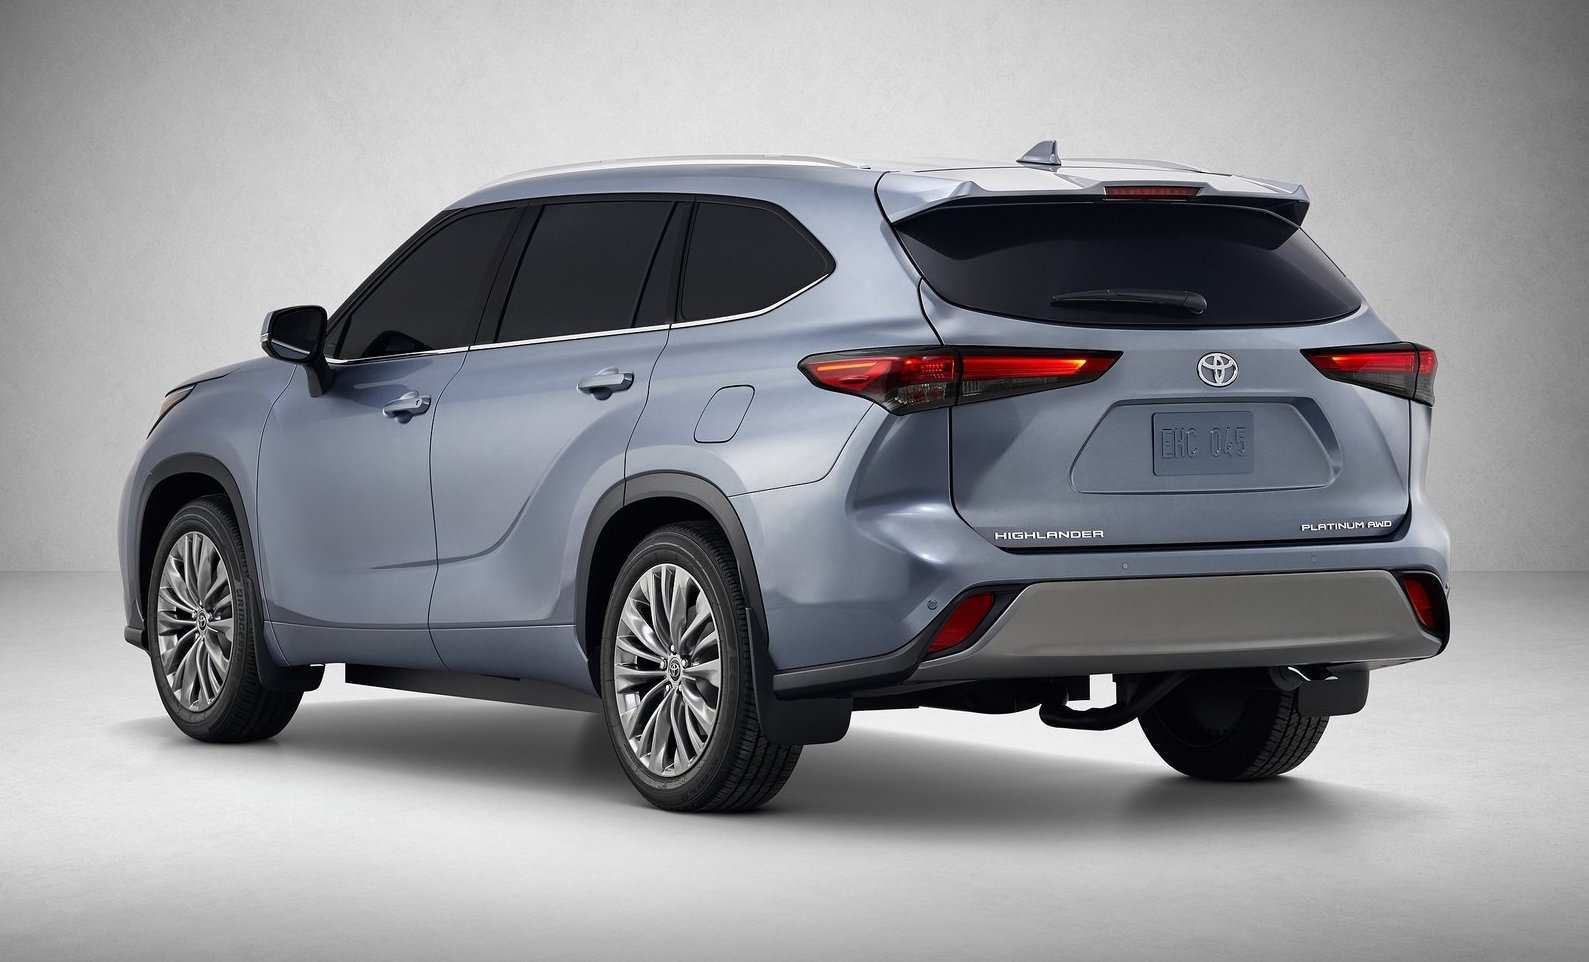 24 New Toyota Kluger 2020 Model History